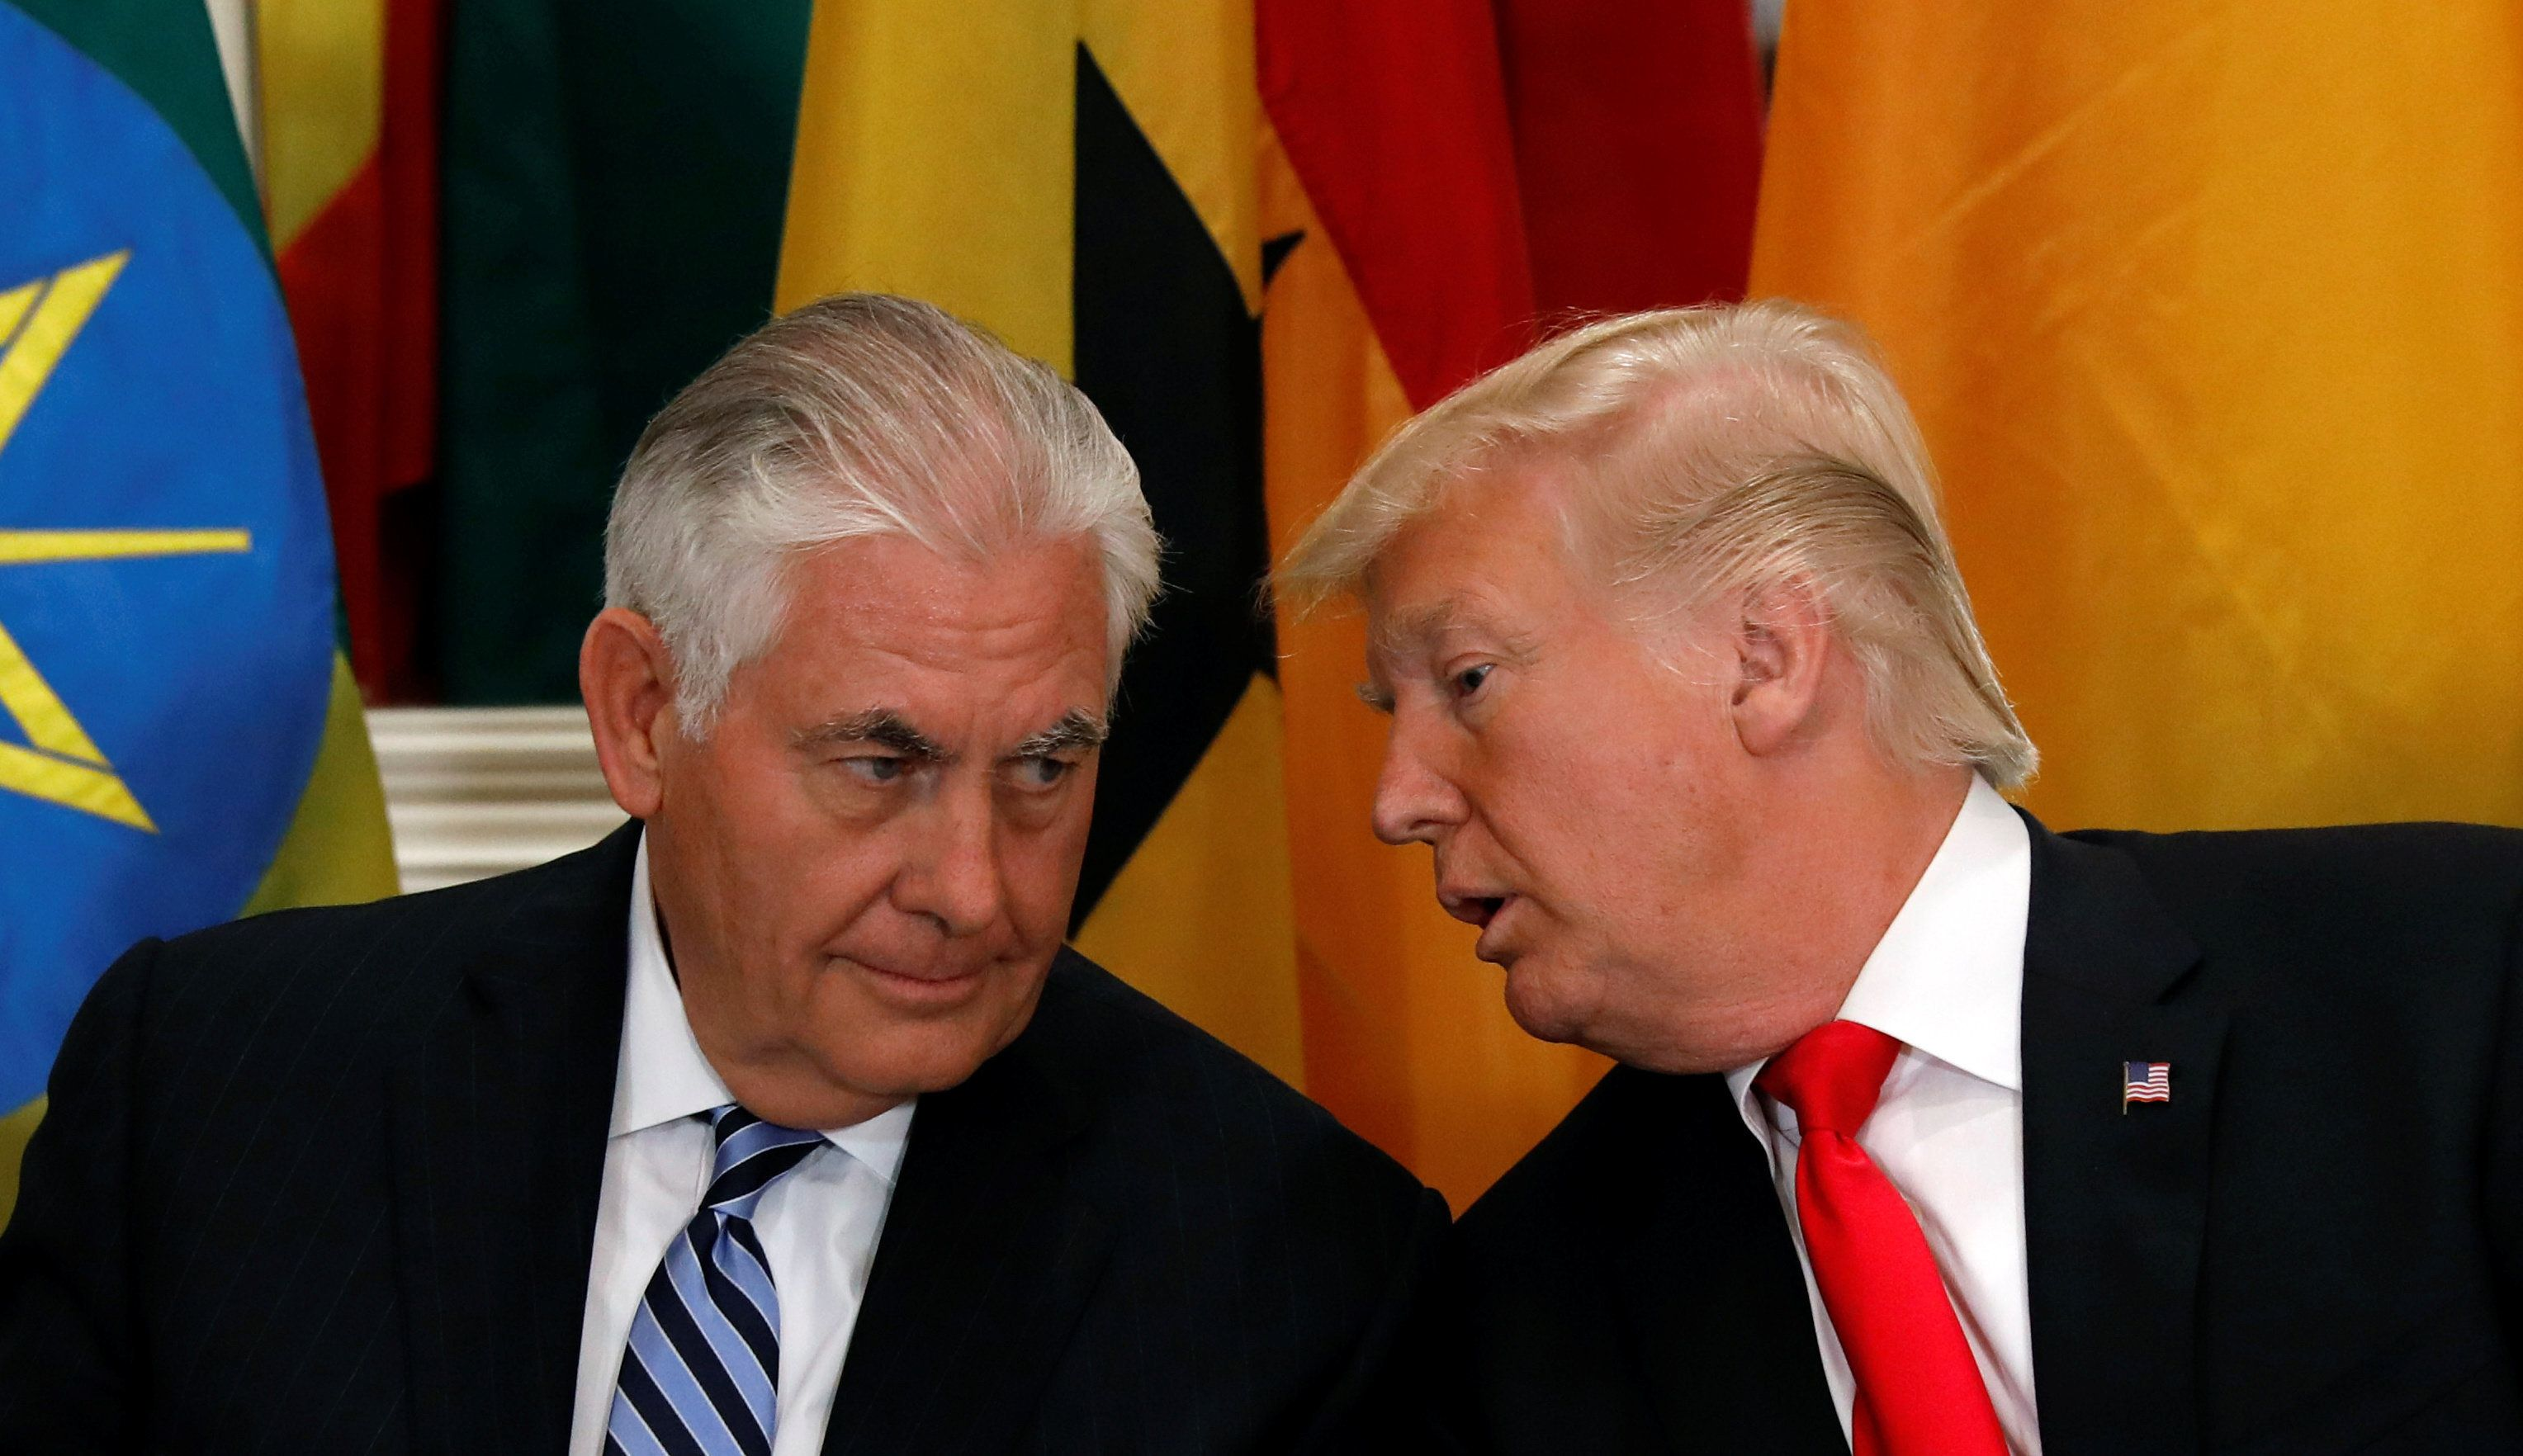 North Korea crisis: Tillerson says diplomacy will continue